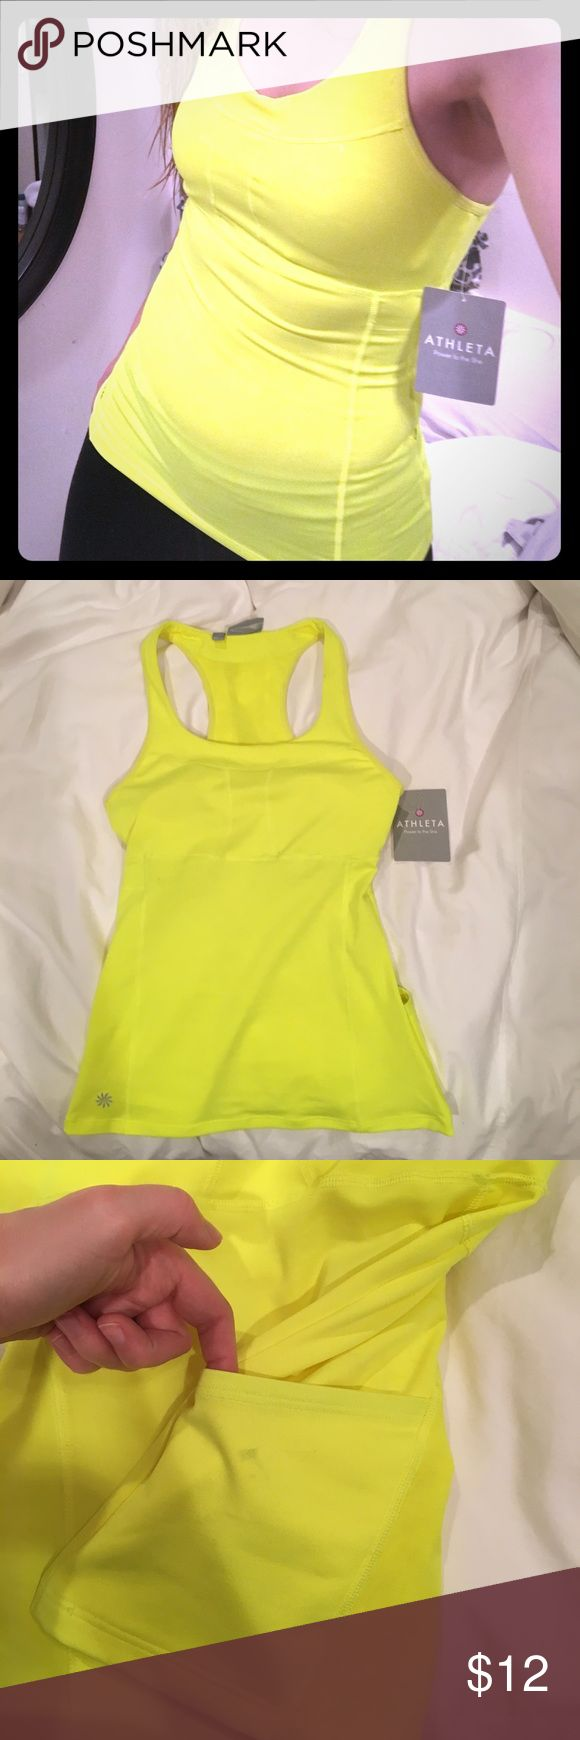 Athleta Neon Yellow workout tank This is a reposh. I needed a bright neon yellow workout top for running/biking in the city. This would have been perfect but it's much more of an XXS fit than a XS. I'm about a 34B and I think a 32 bust would find it more comfortable. It still has tags attached. I did notice some discoloration when I received it- but it's never been through the wash, so that might remove them. It has pockets on the back hem and has a built in shelf bra. Athleta Tops Tank Tops